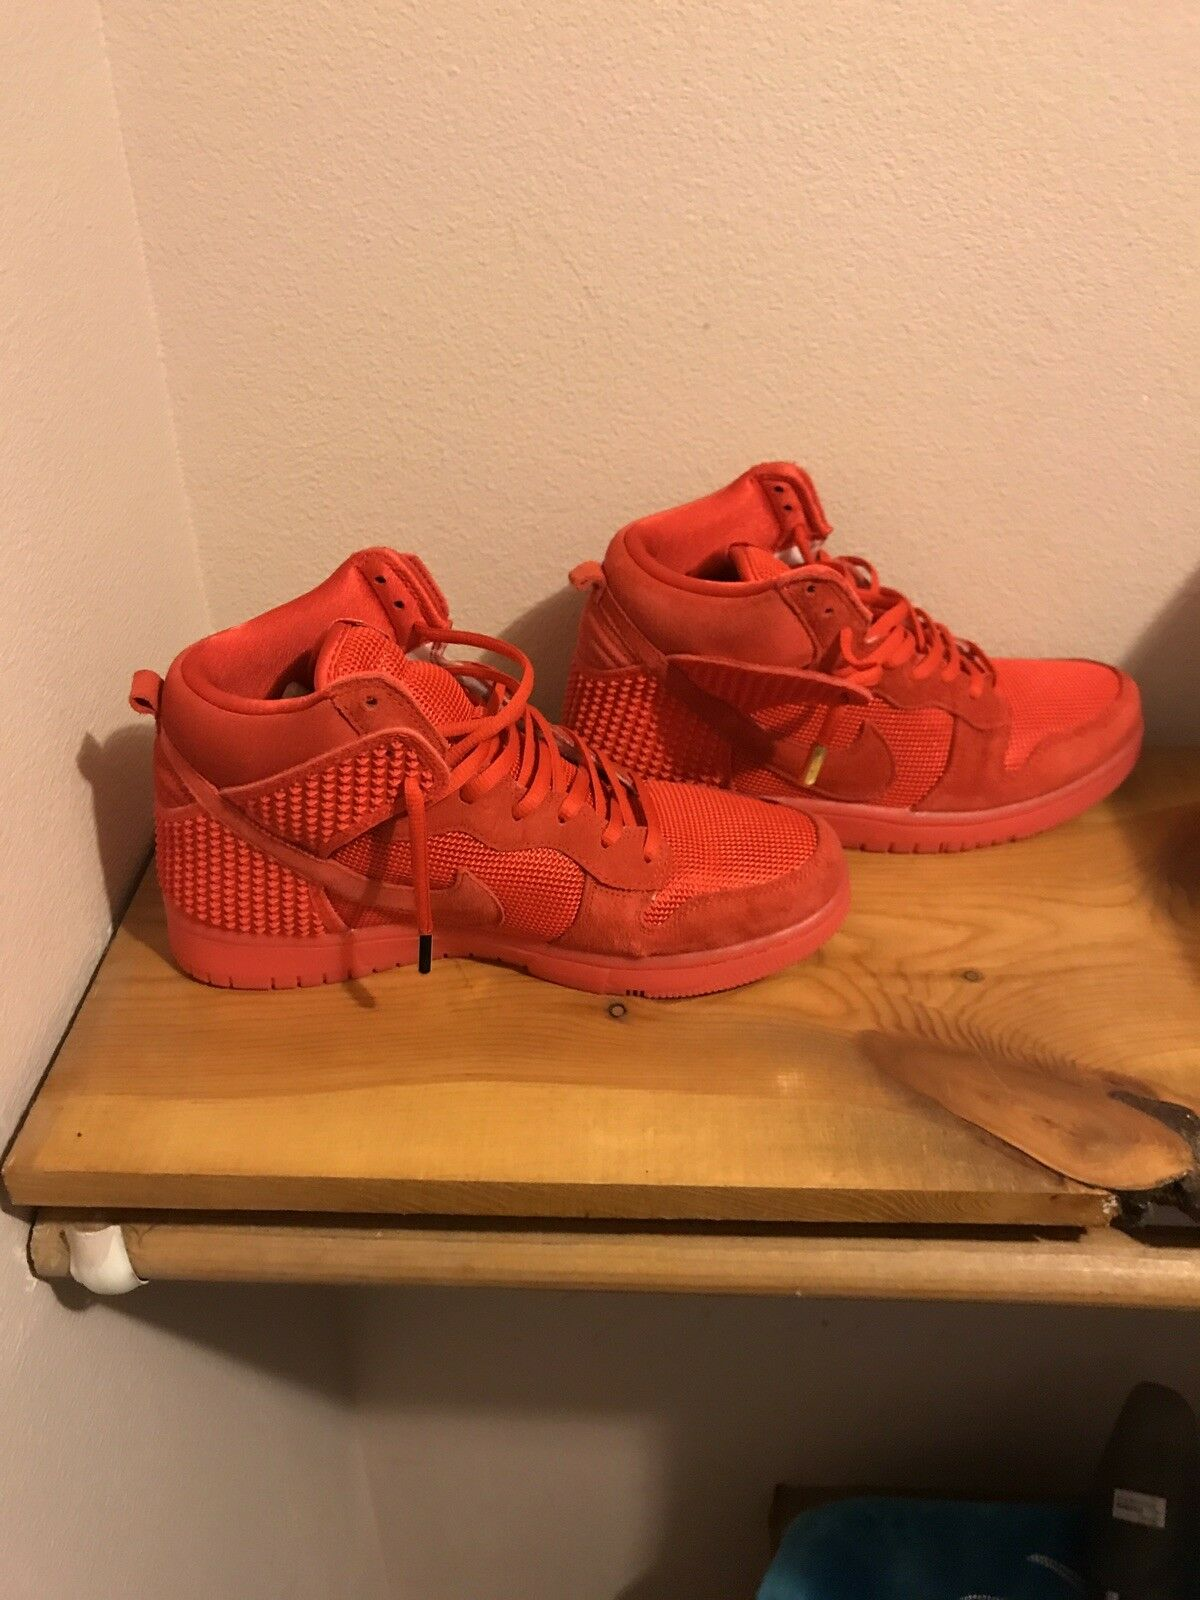 Red October Dunk 8.5  Cheap and fashionable